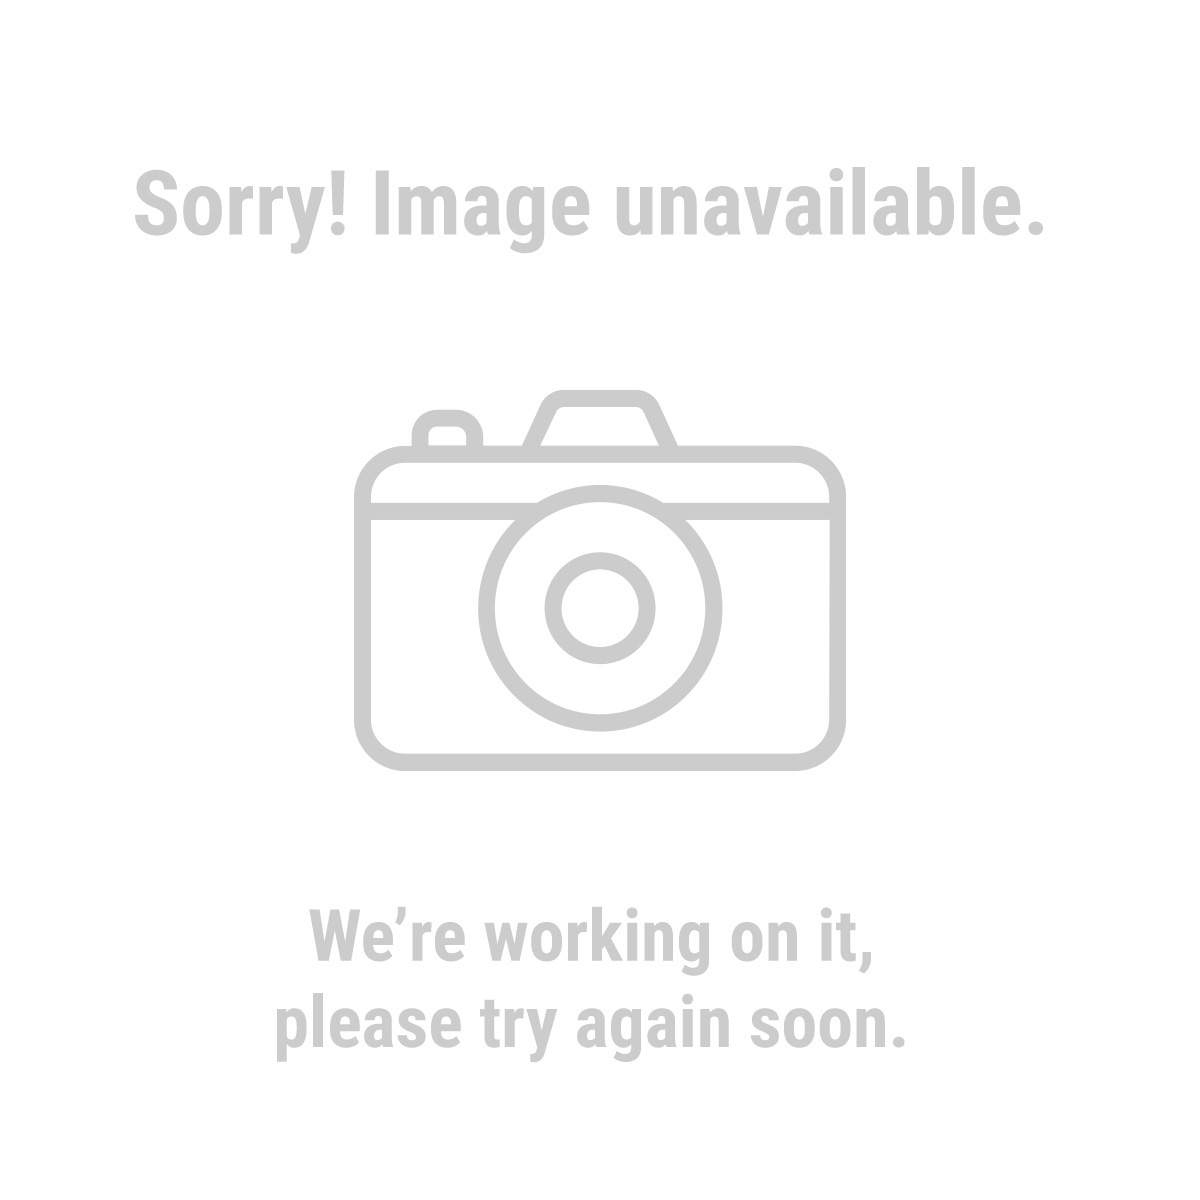 750 Lbs Capacity Heavy Duty Folding Cargo Carrier Harbor Freight Utility Trailer On Wiring